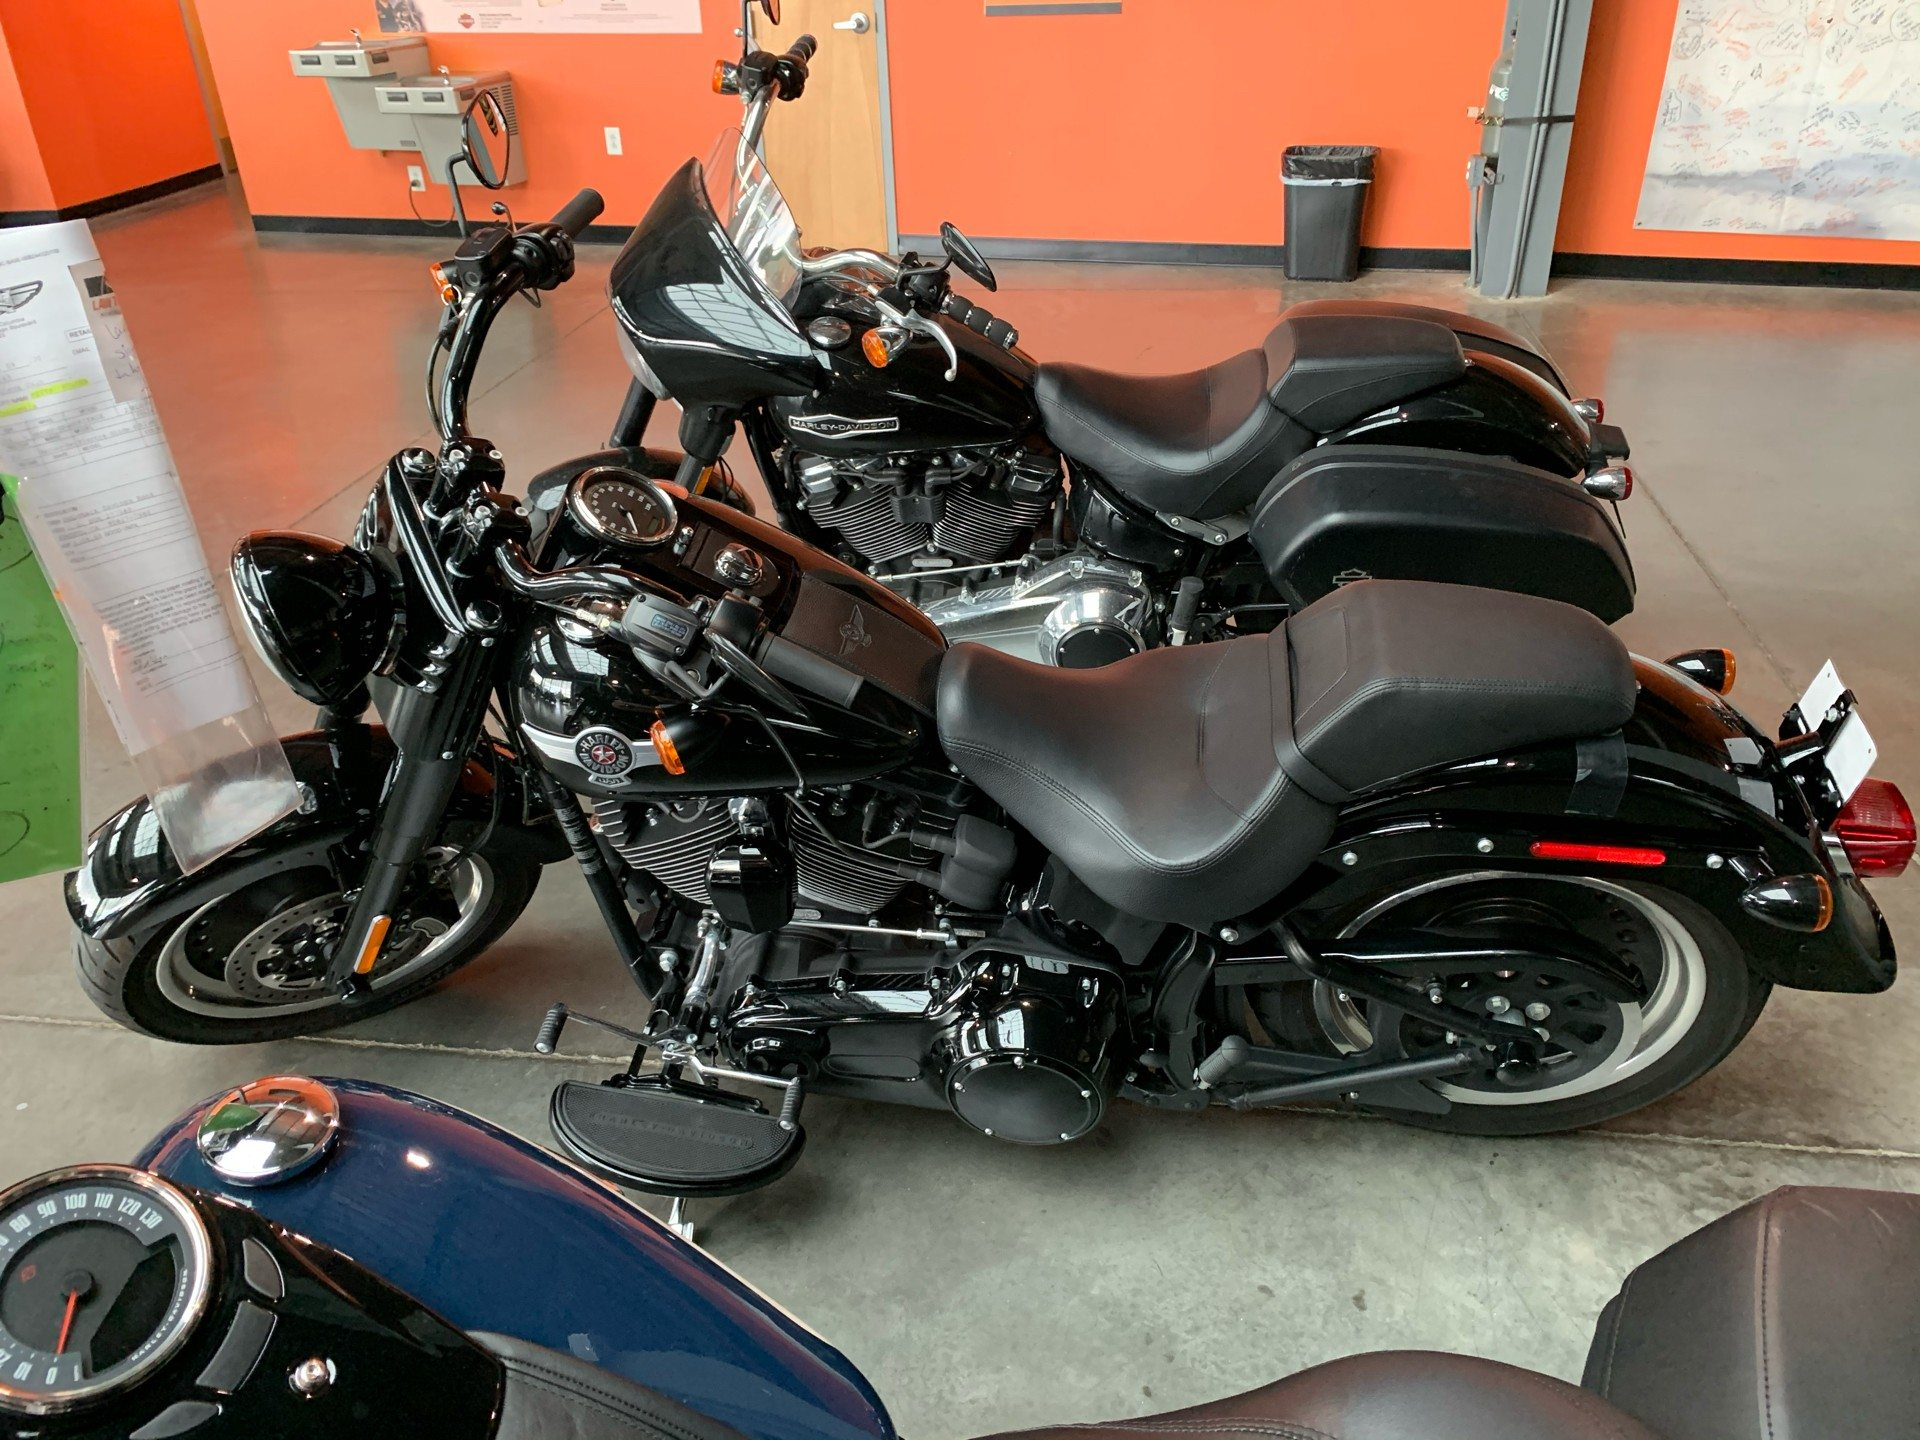 2017 Harley-Davidson FAT BOY S in Columbia, Tennessee - Photo 5